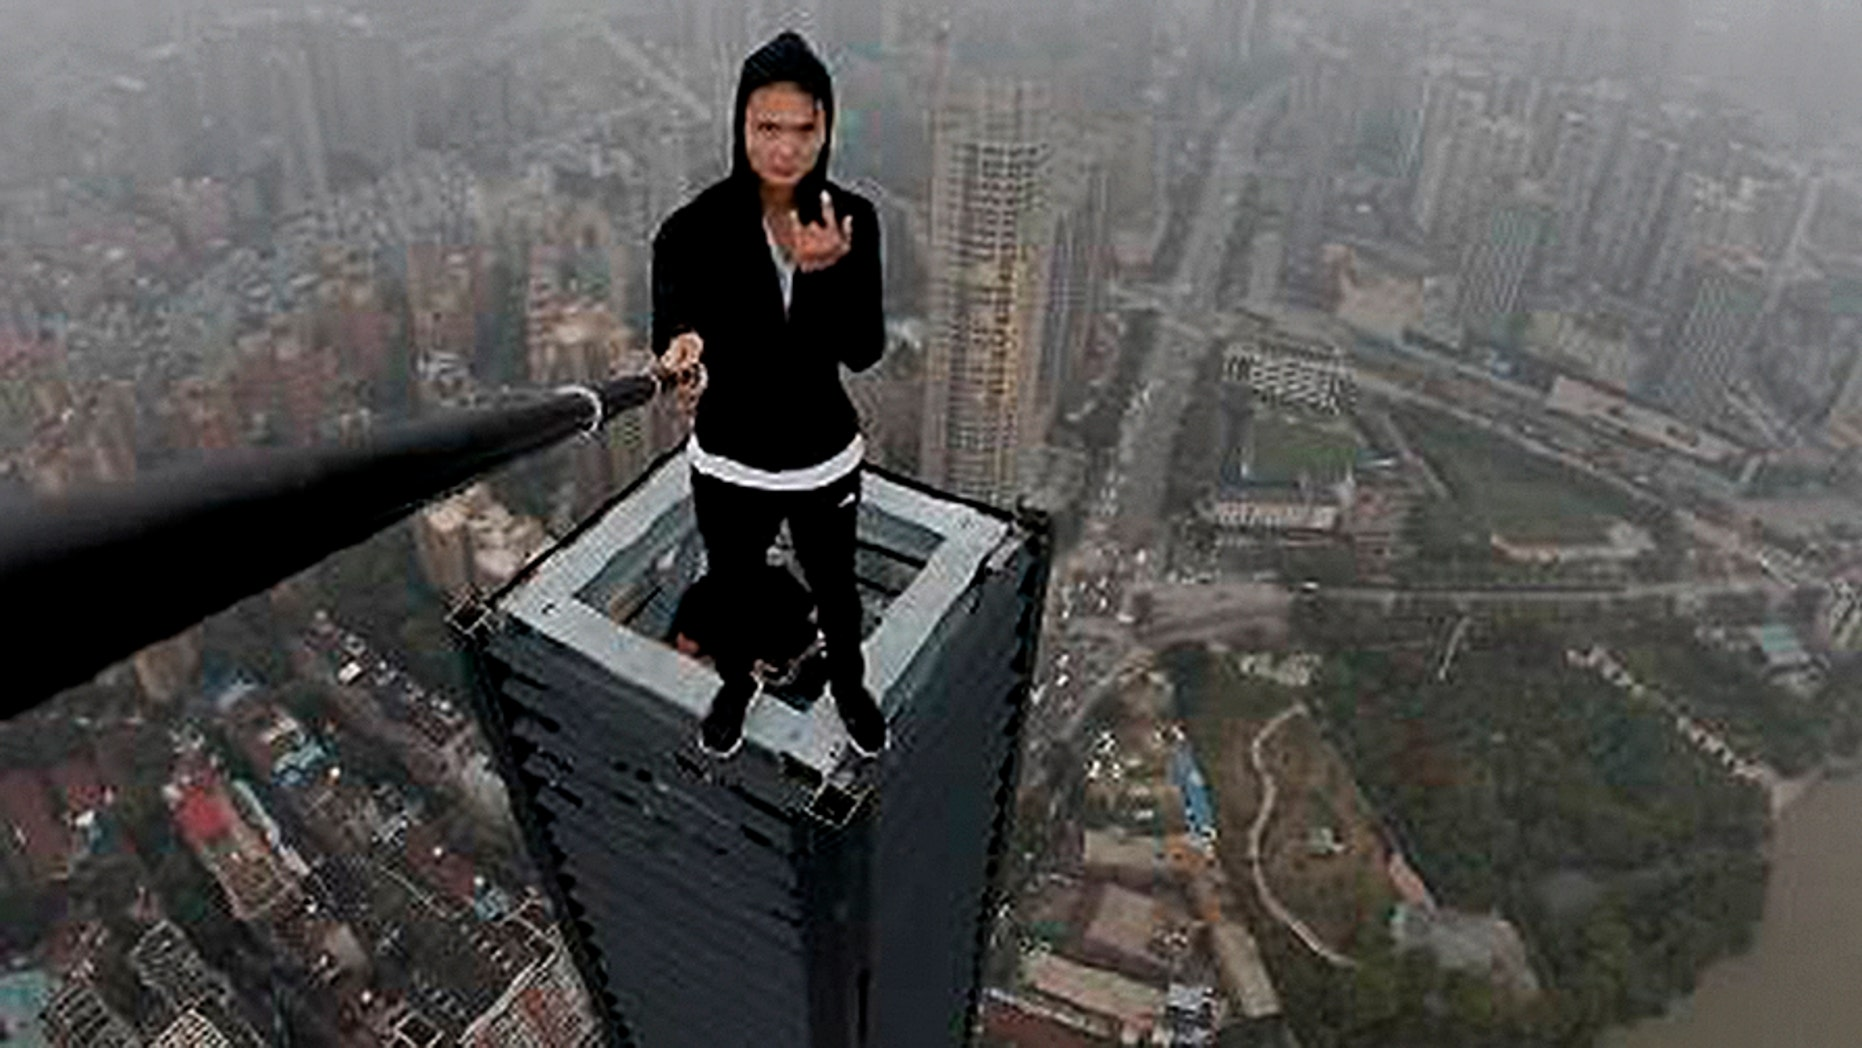 Rooftopper Wu Yongning Courtesy Of Weibo